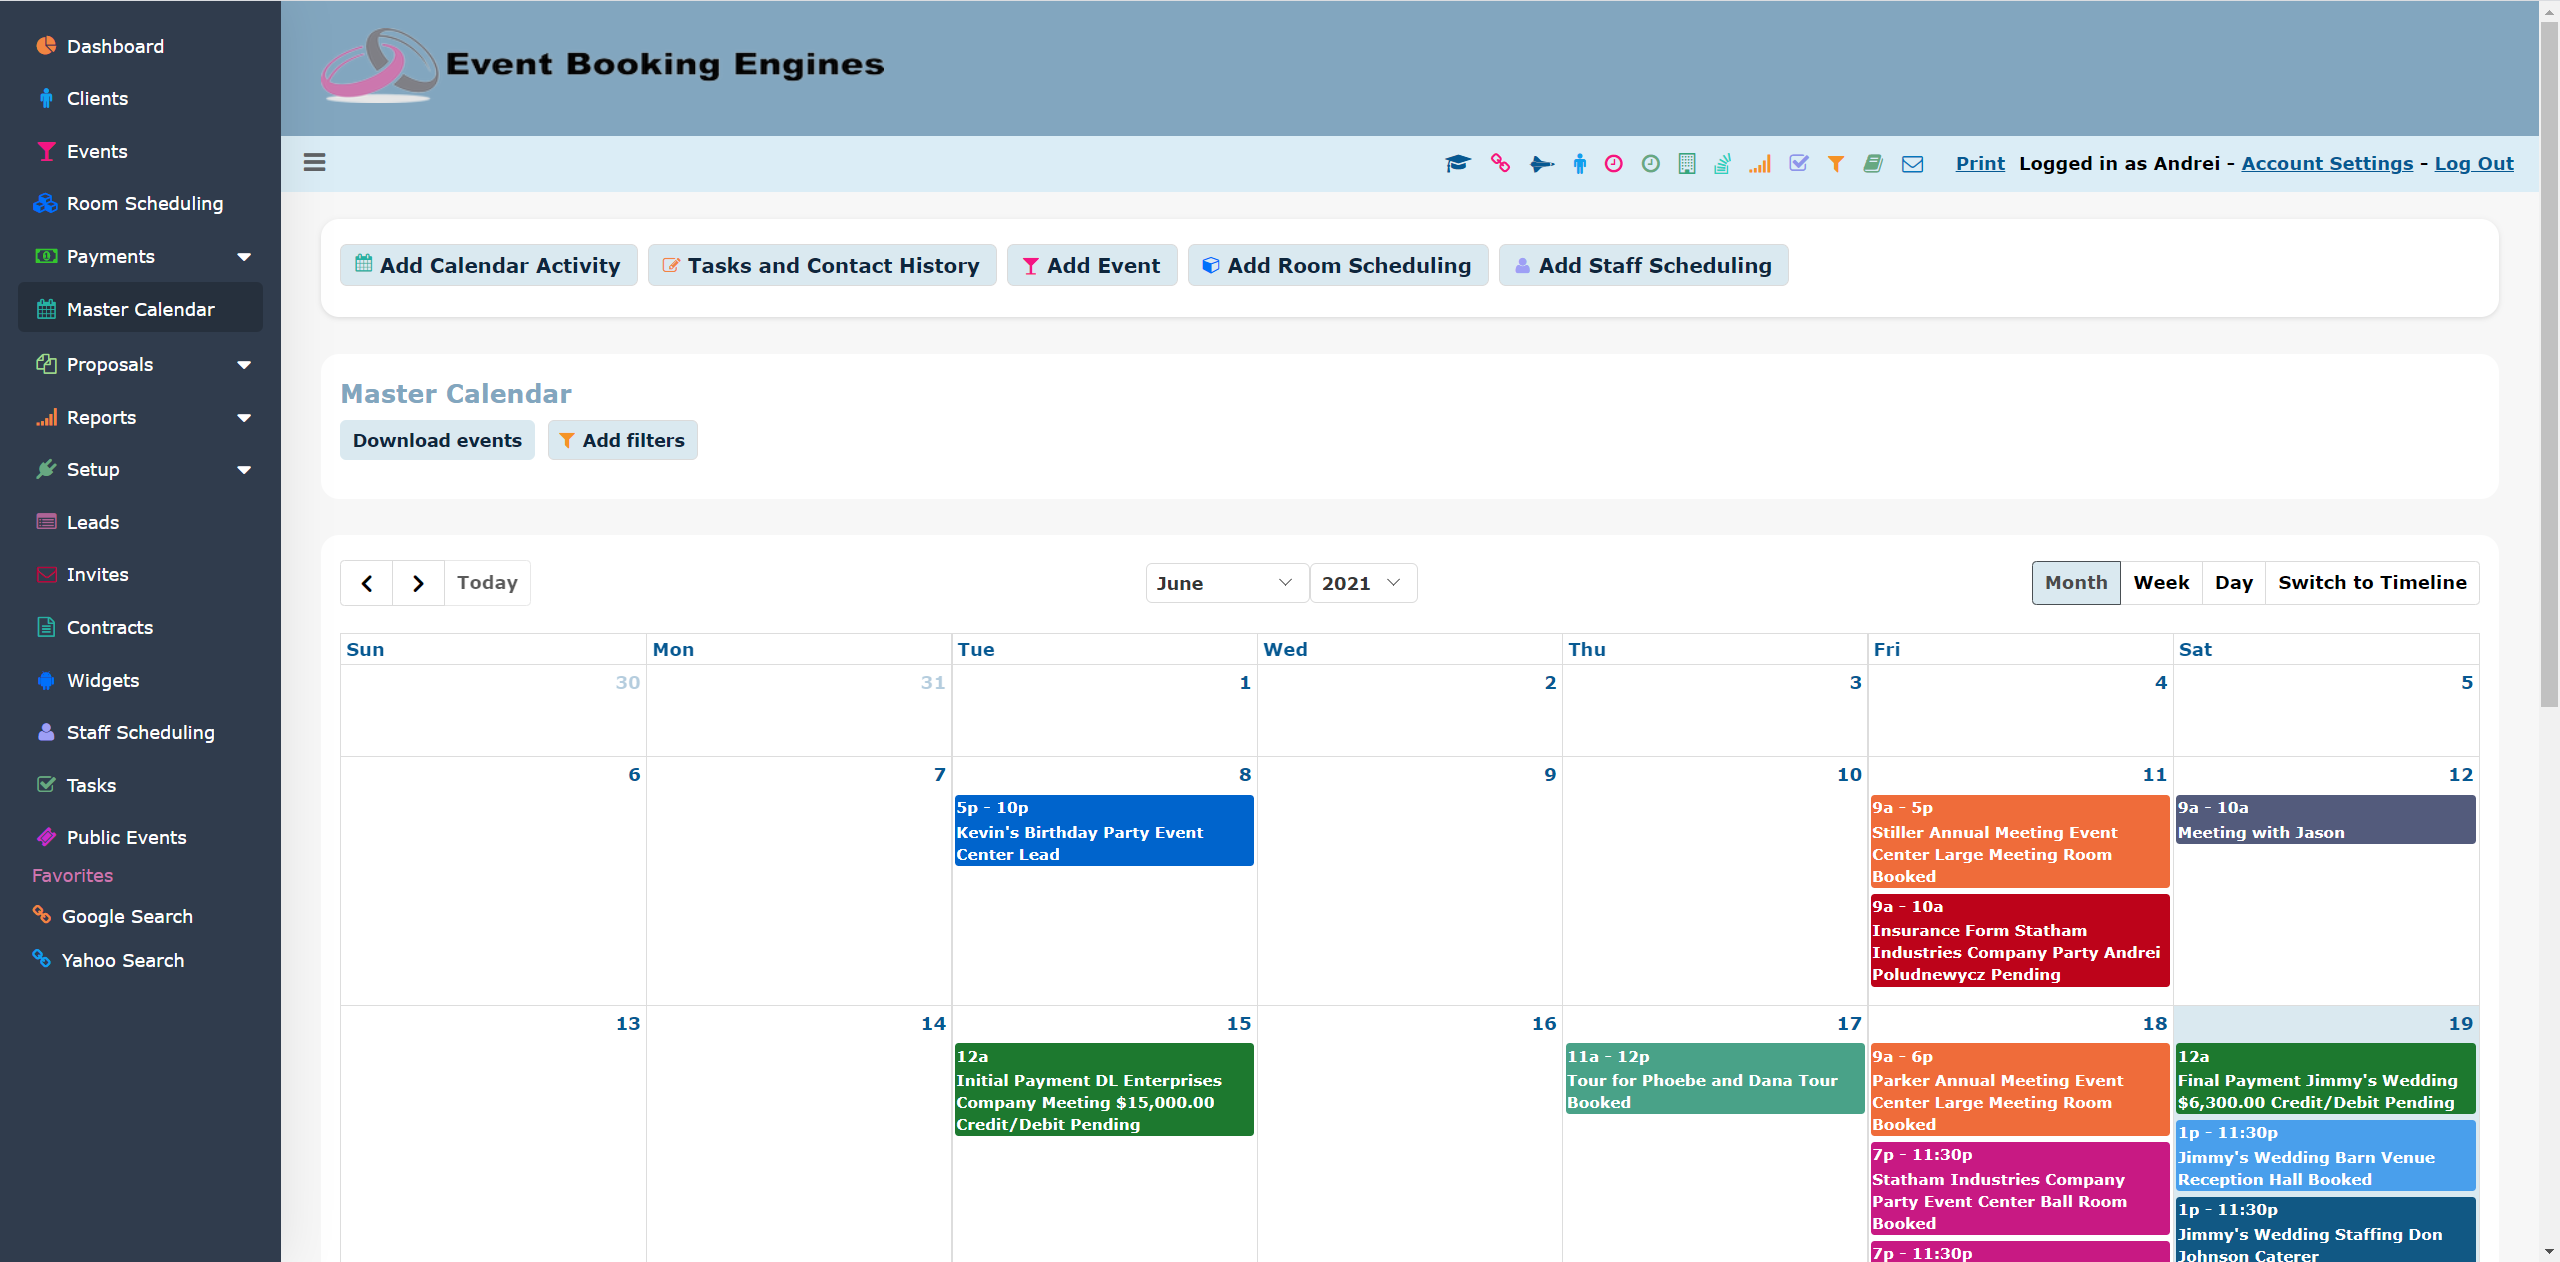 Event Booking Engines Software - 4